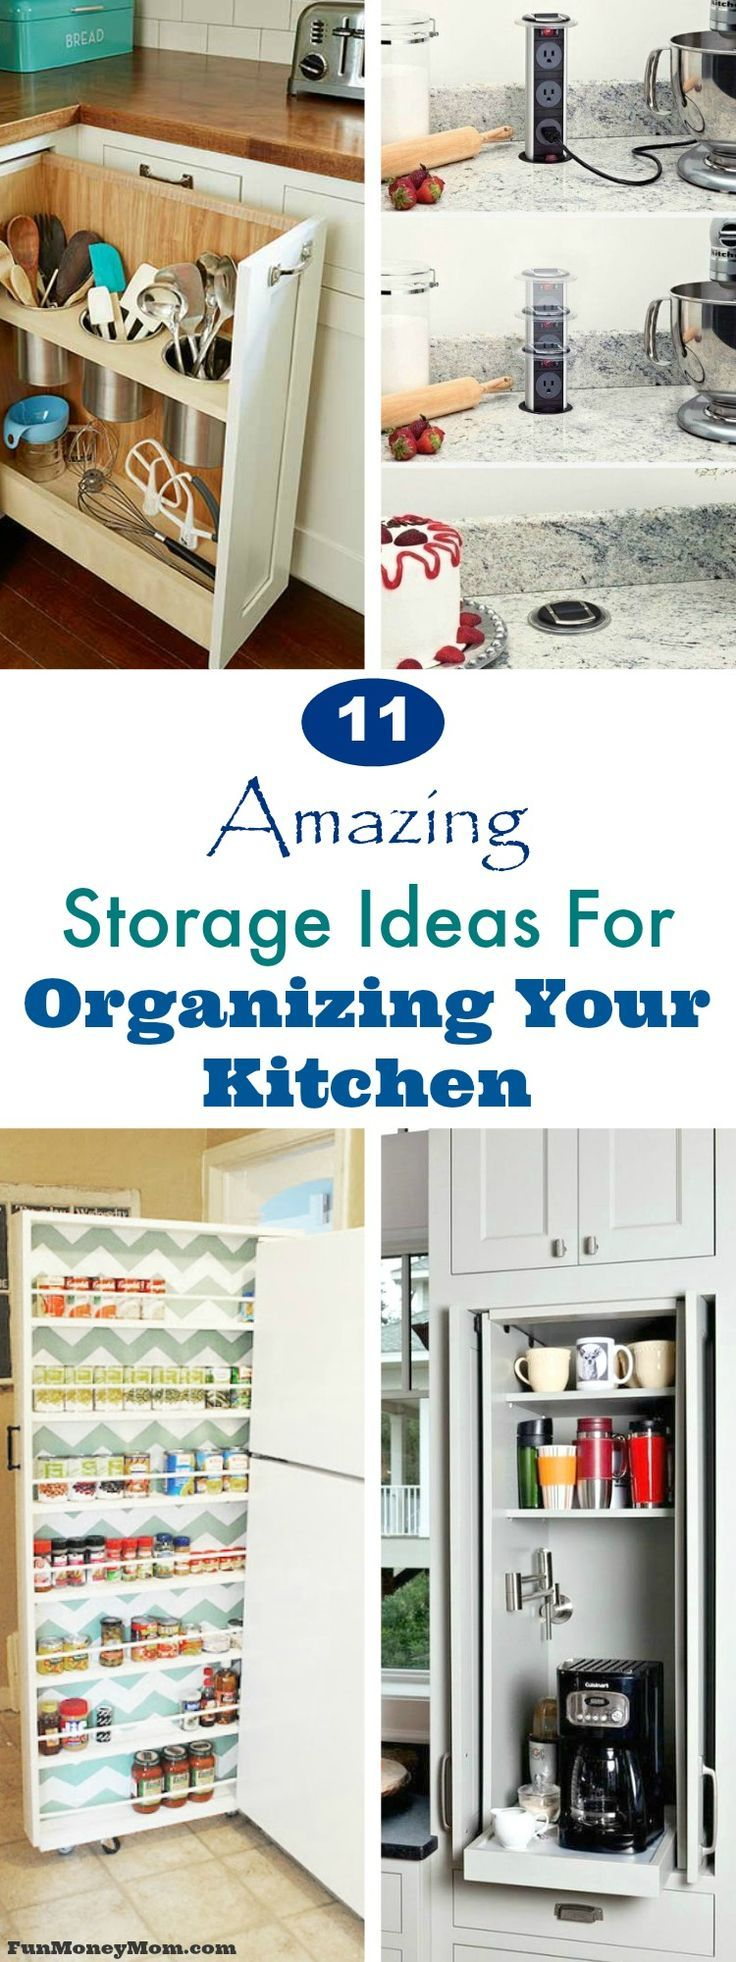 878 best Organizing Tips for your Home images on Pinterest ...